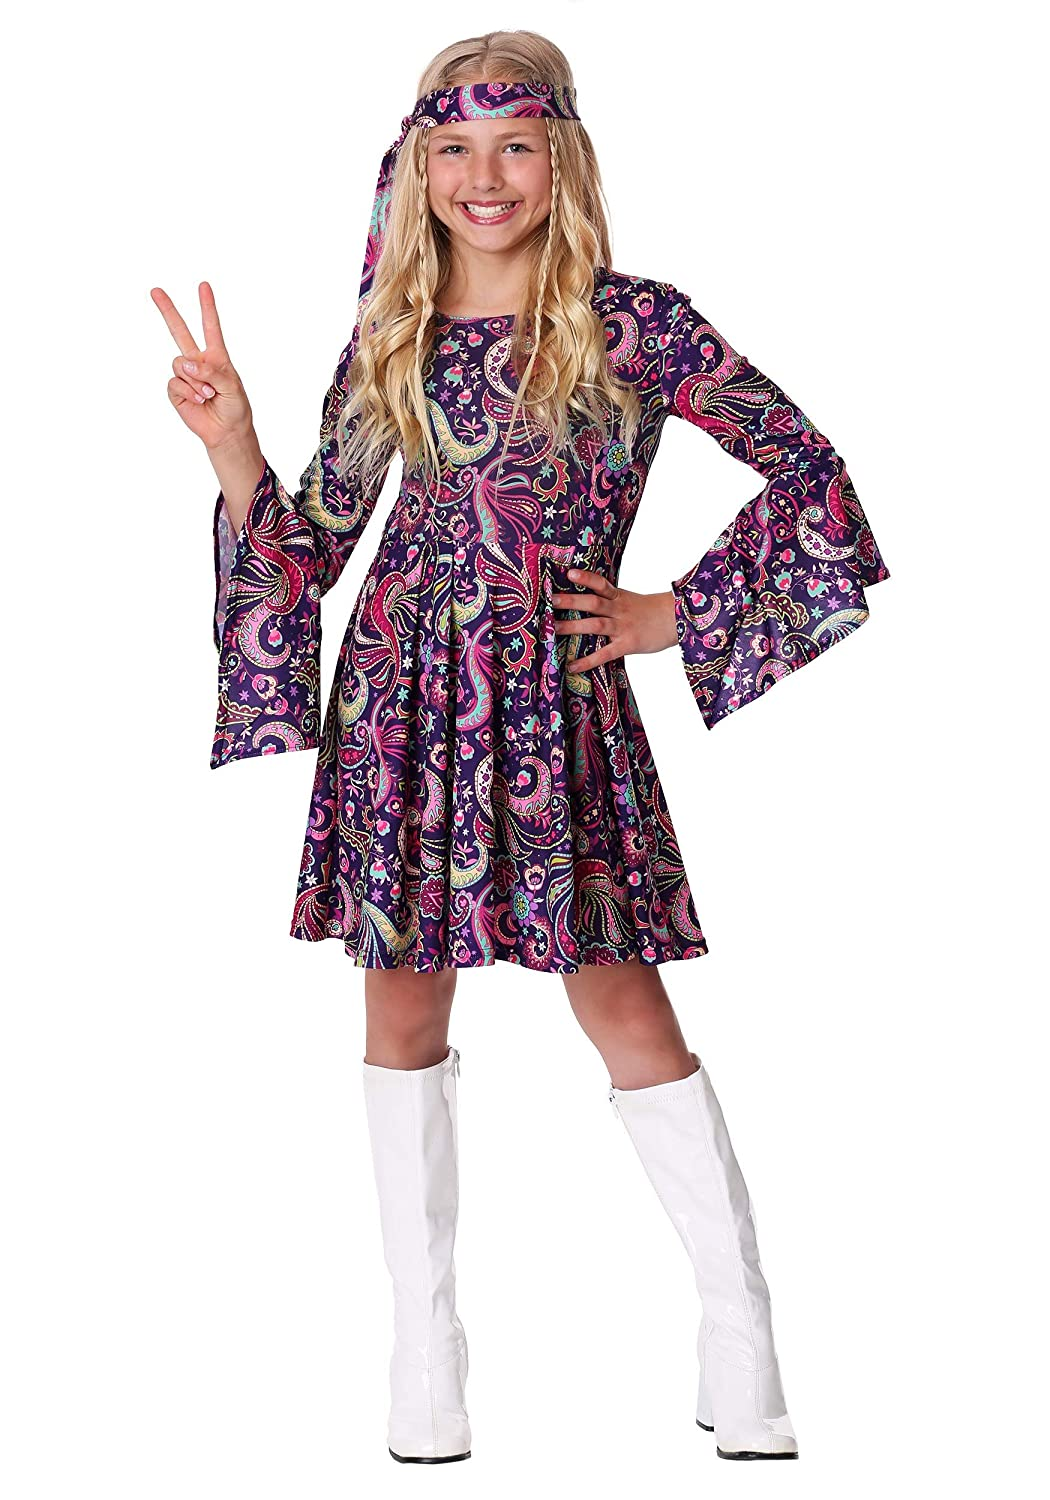 Hippie Dress | Long, Boho, Vintage, 70s Girls Woodstock Hippie Costume $19.99 AT vintagedancer.com